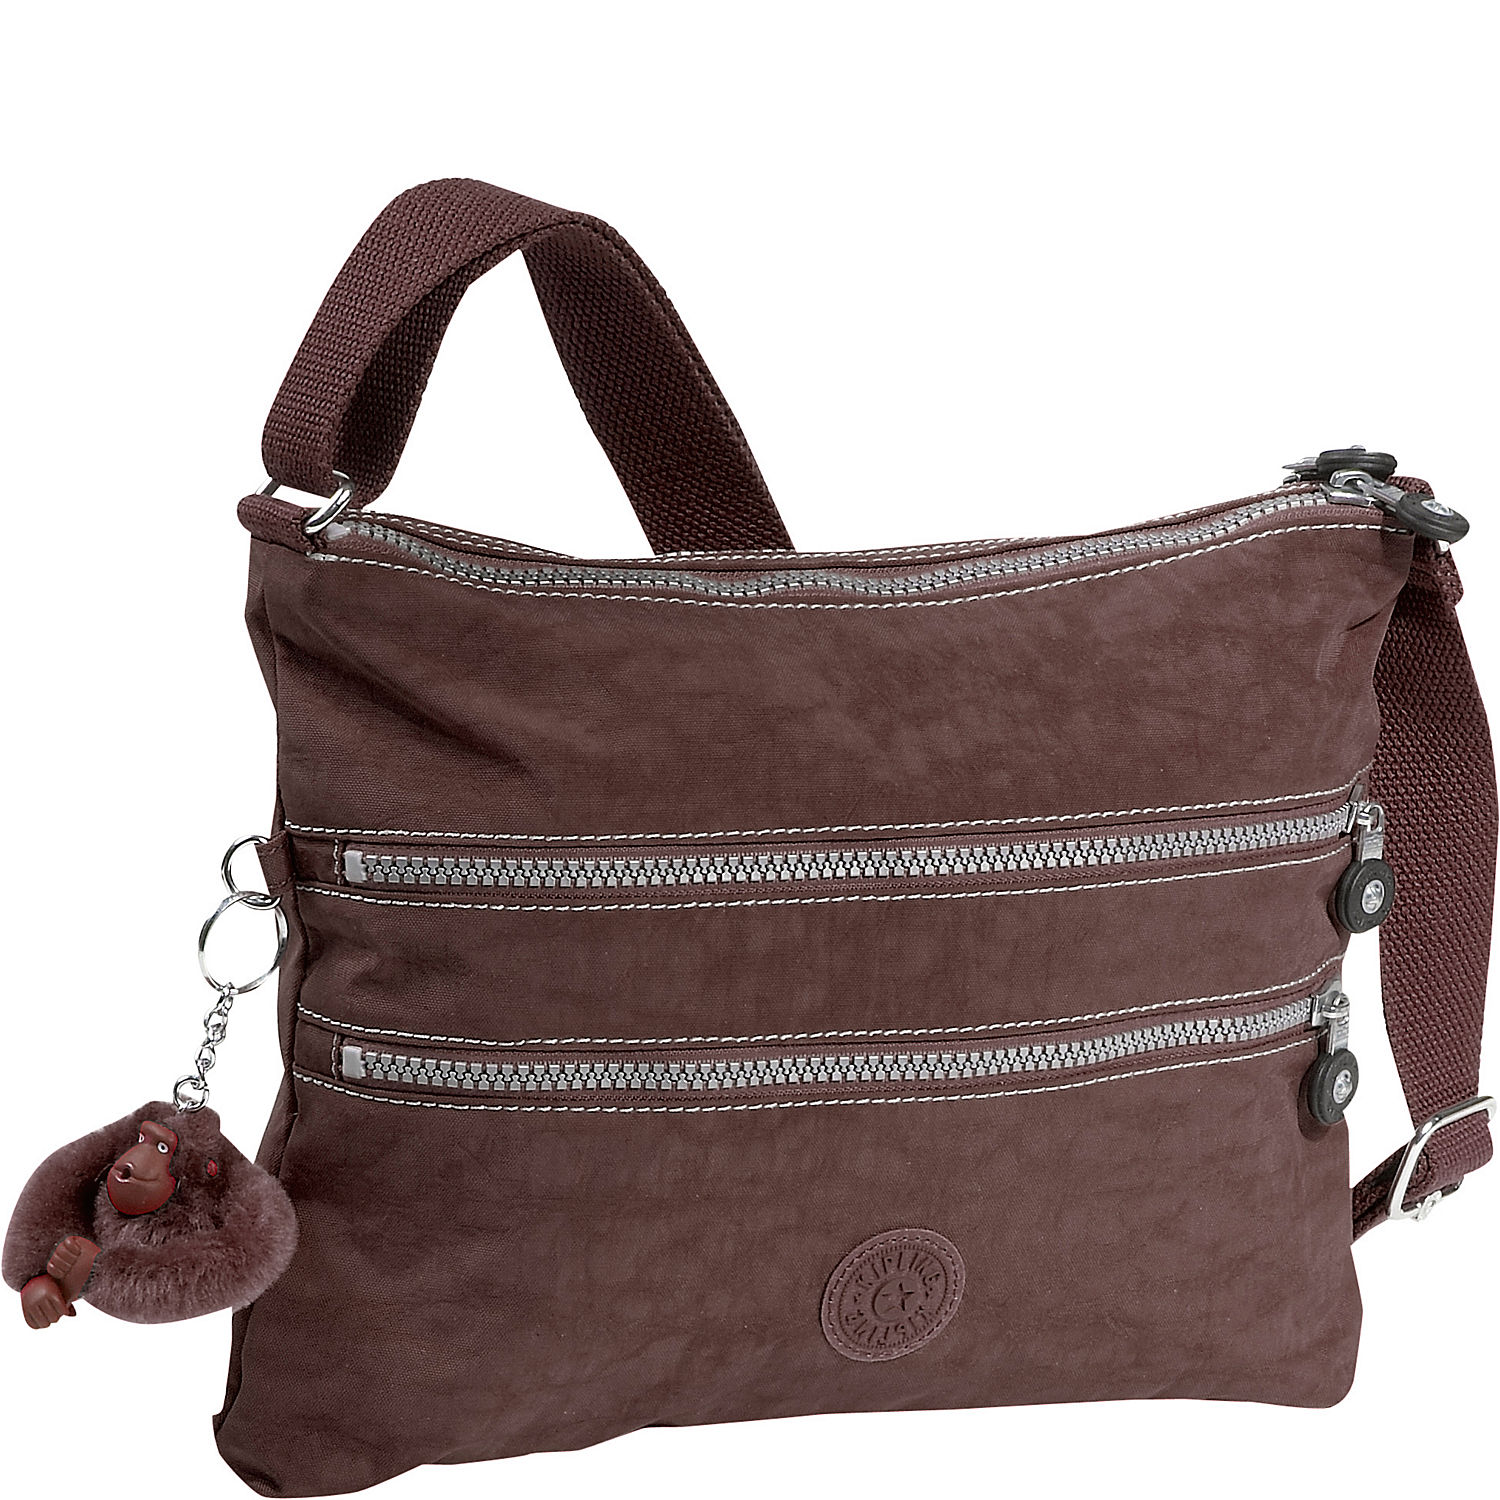 Kipling Handbags, Backpacks & Luggage are wardrobe favourites across the globe. Affordable, sporty & functional bags, they're a lifestyle thegamingpistol.ml: (0)